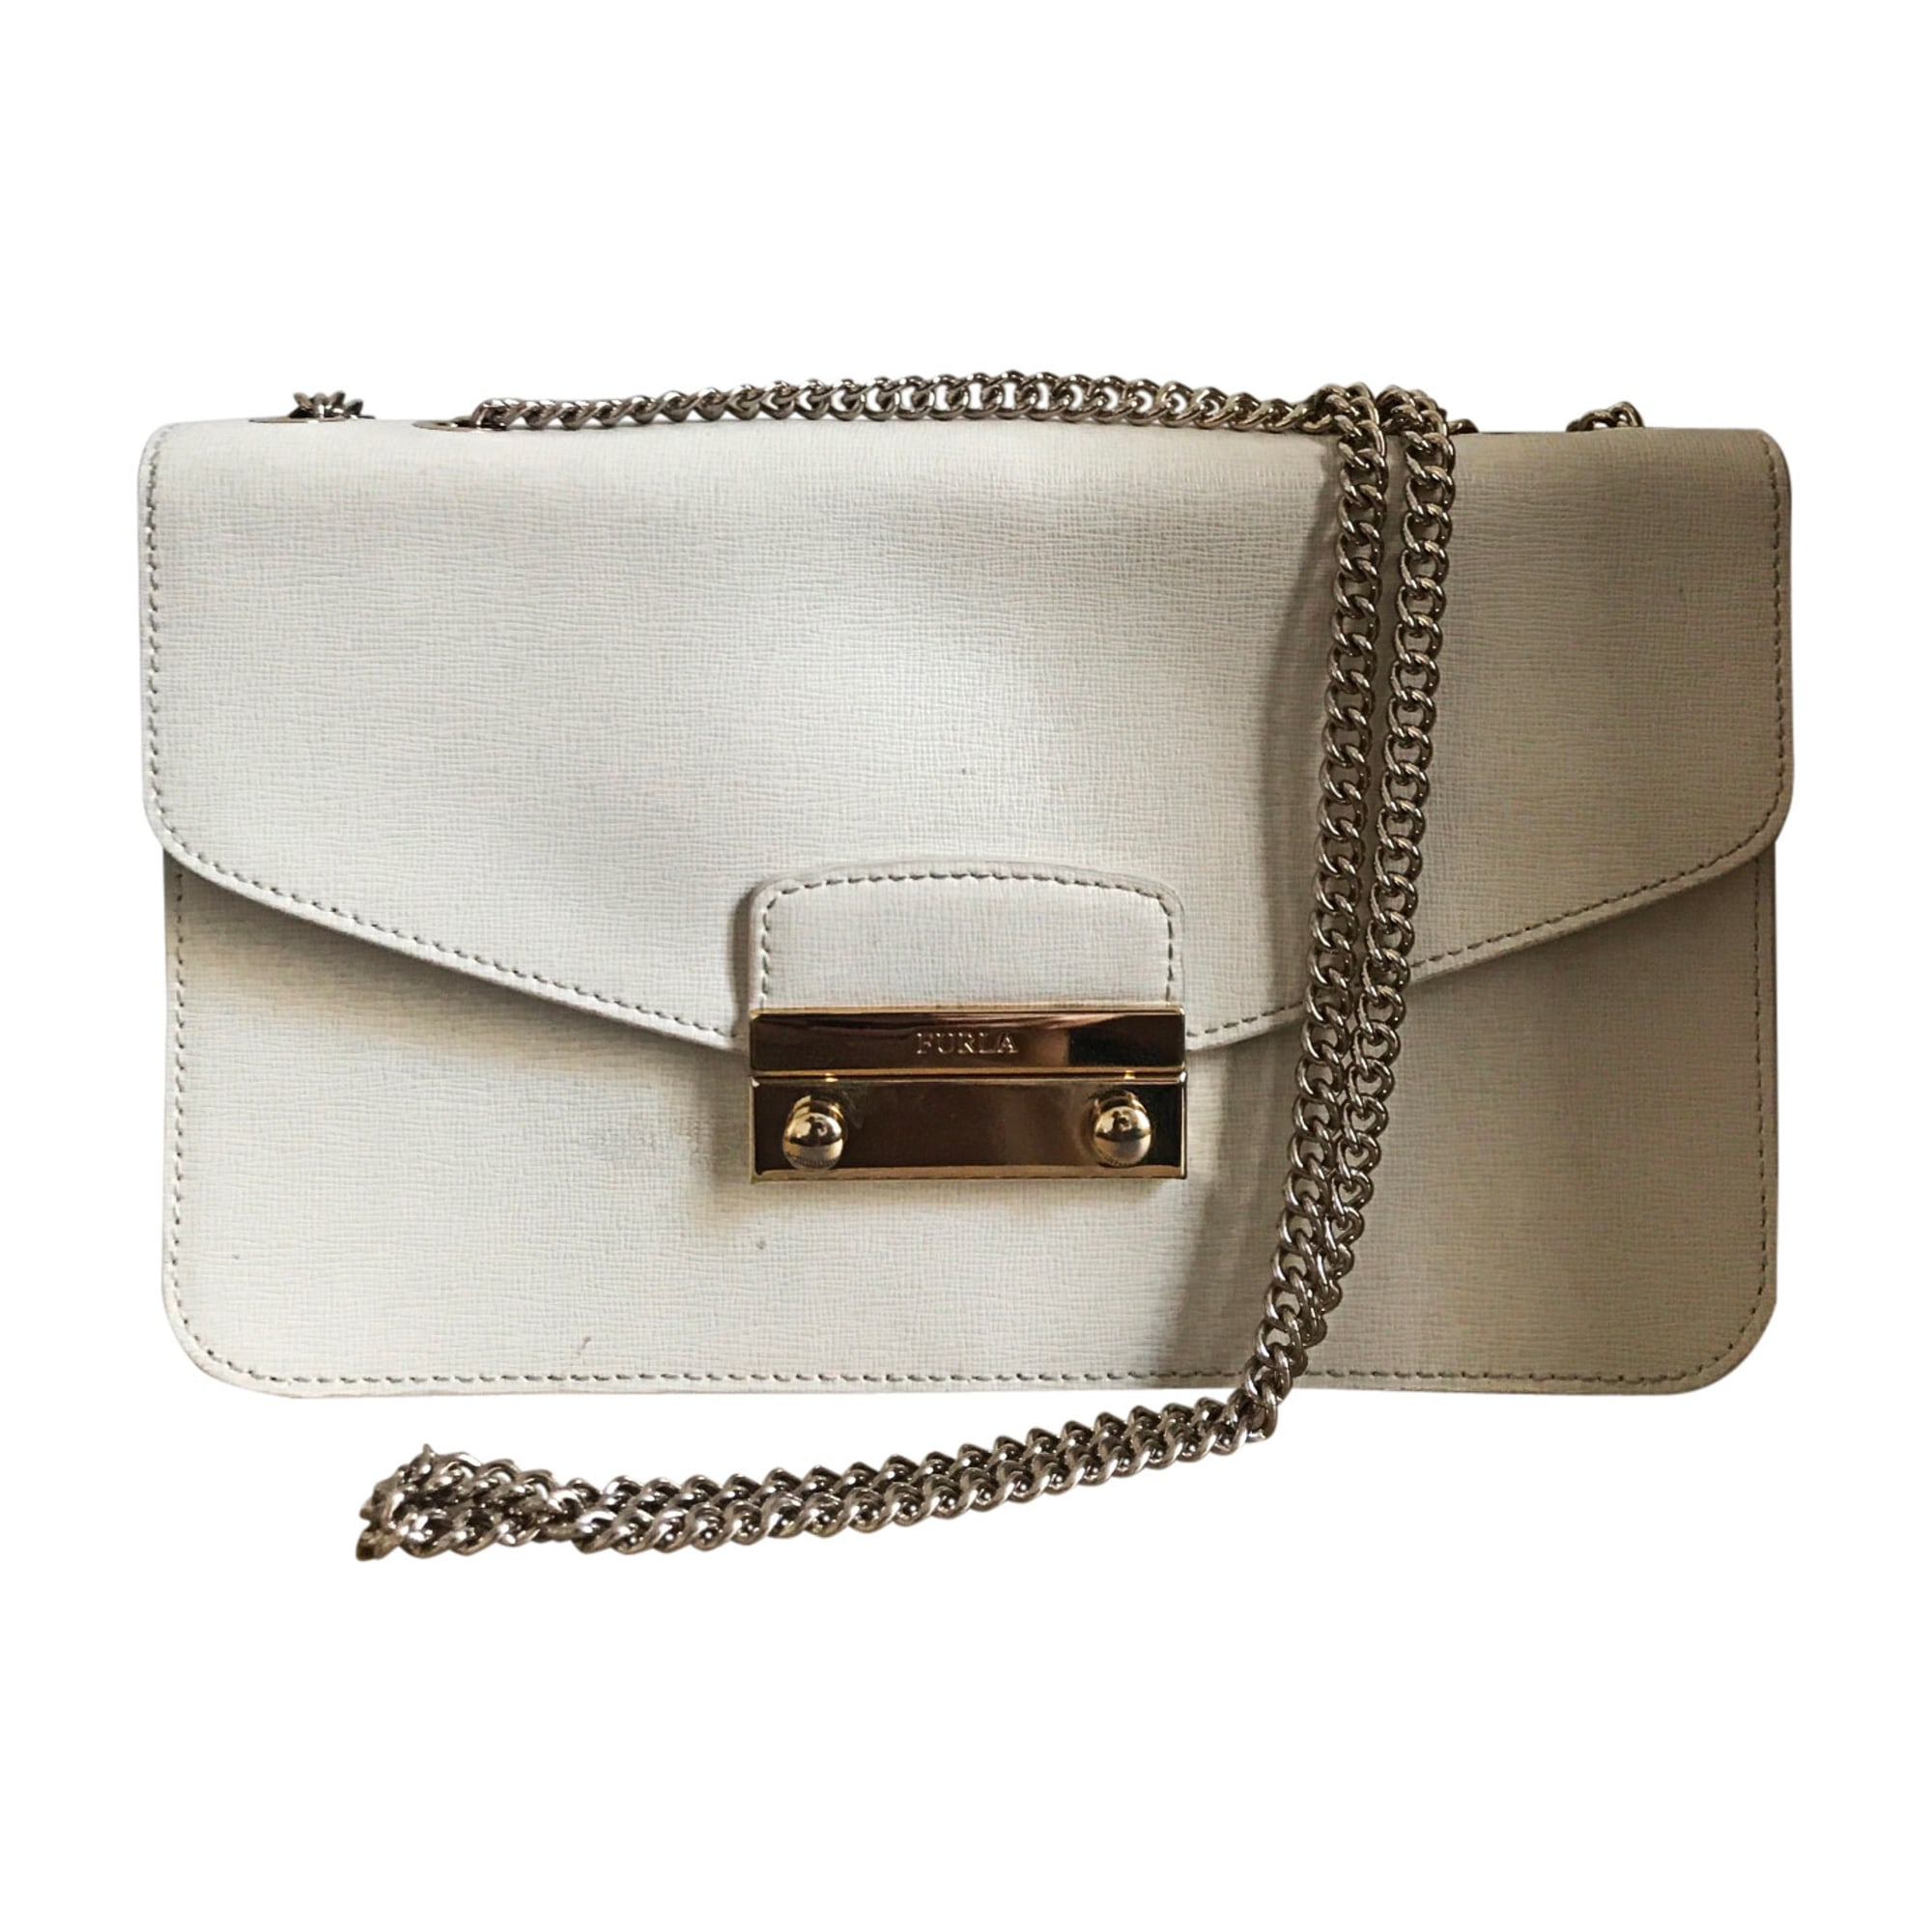 Leather Clutch FURLA White, off-white, ecru